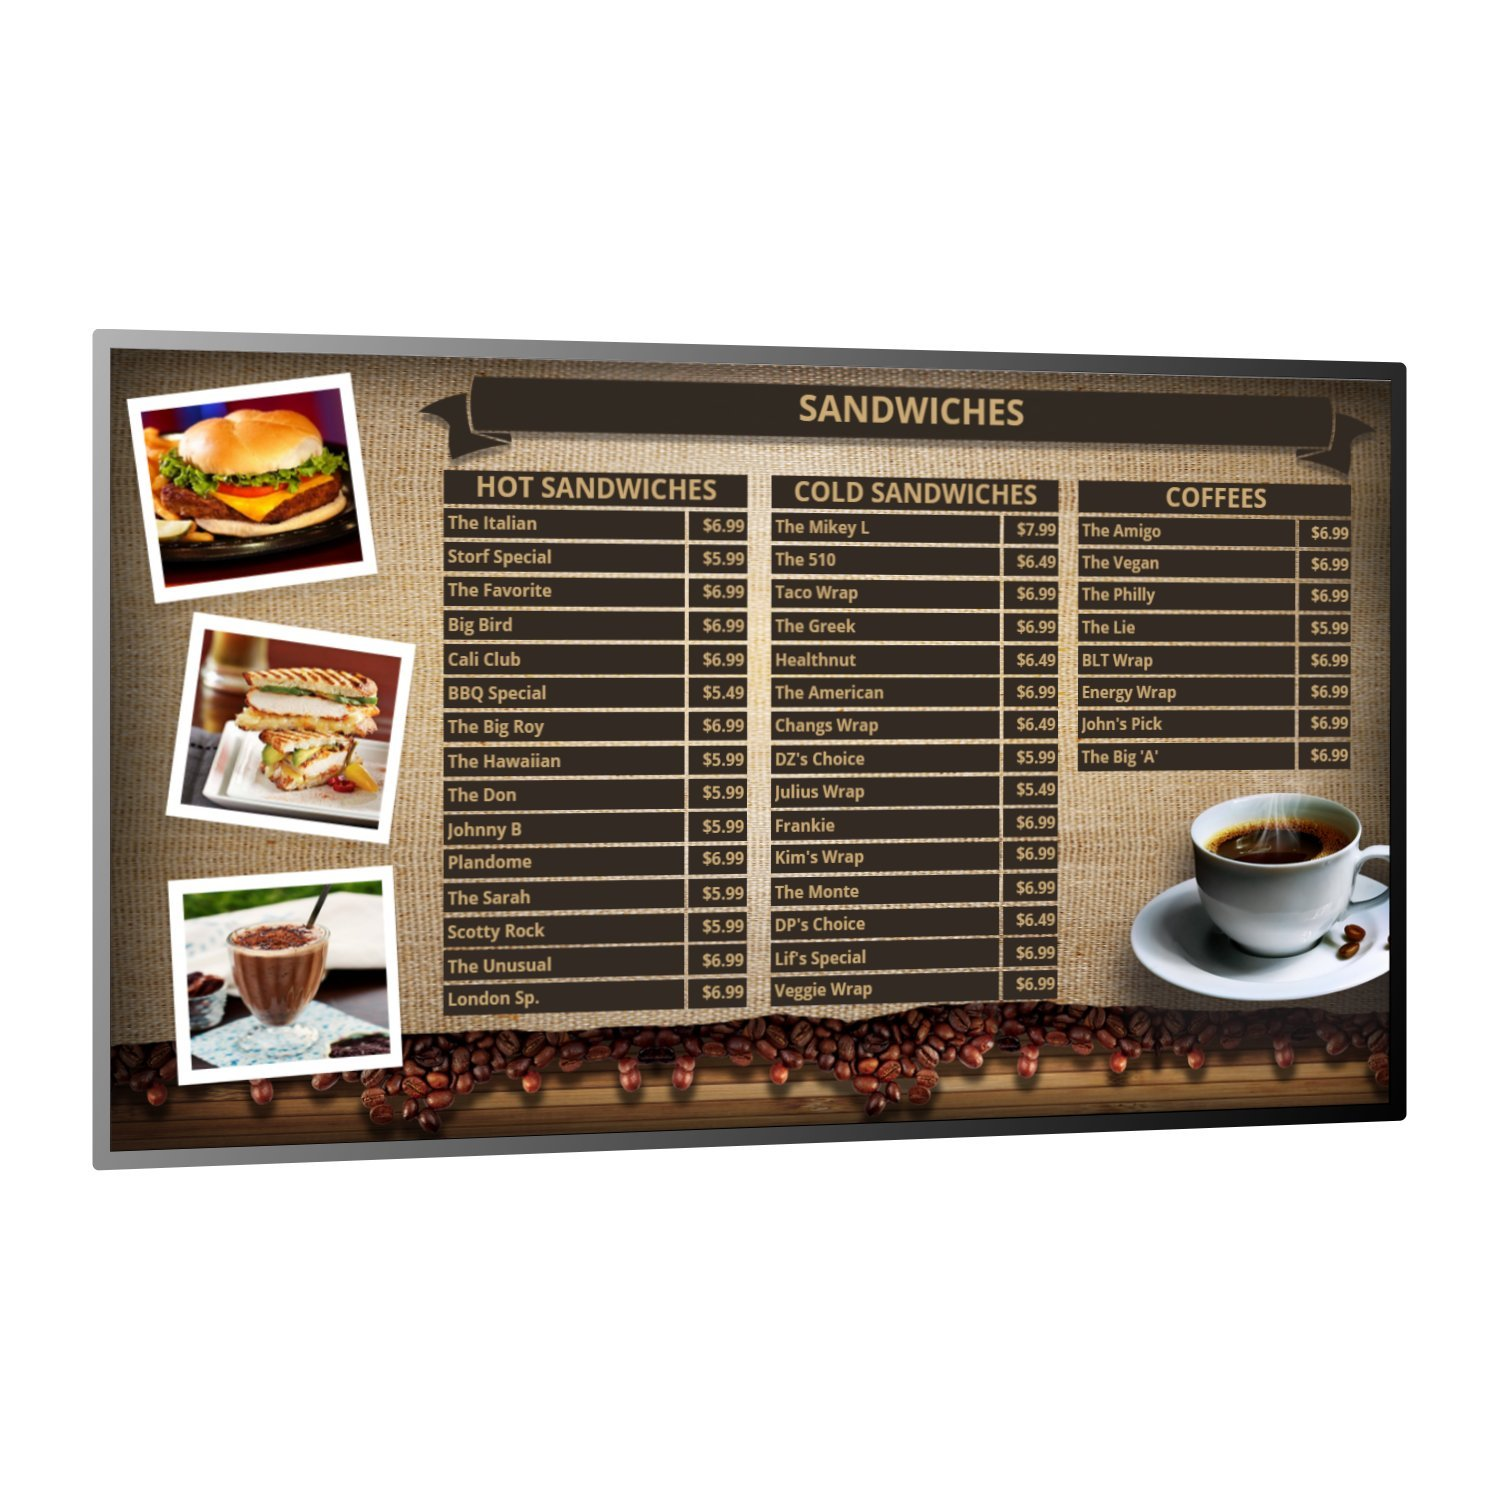 doPublicity Digital Signage Player, Software with over 1,000 Templates for displaying Restaurant Menu Boards, Advertising, Corporate Messaging, Product Promotion and Live Weather on HD and 4K TV by doPublicity (Image #3)